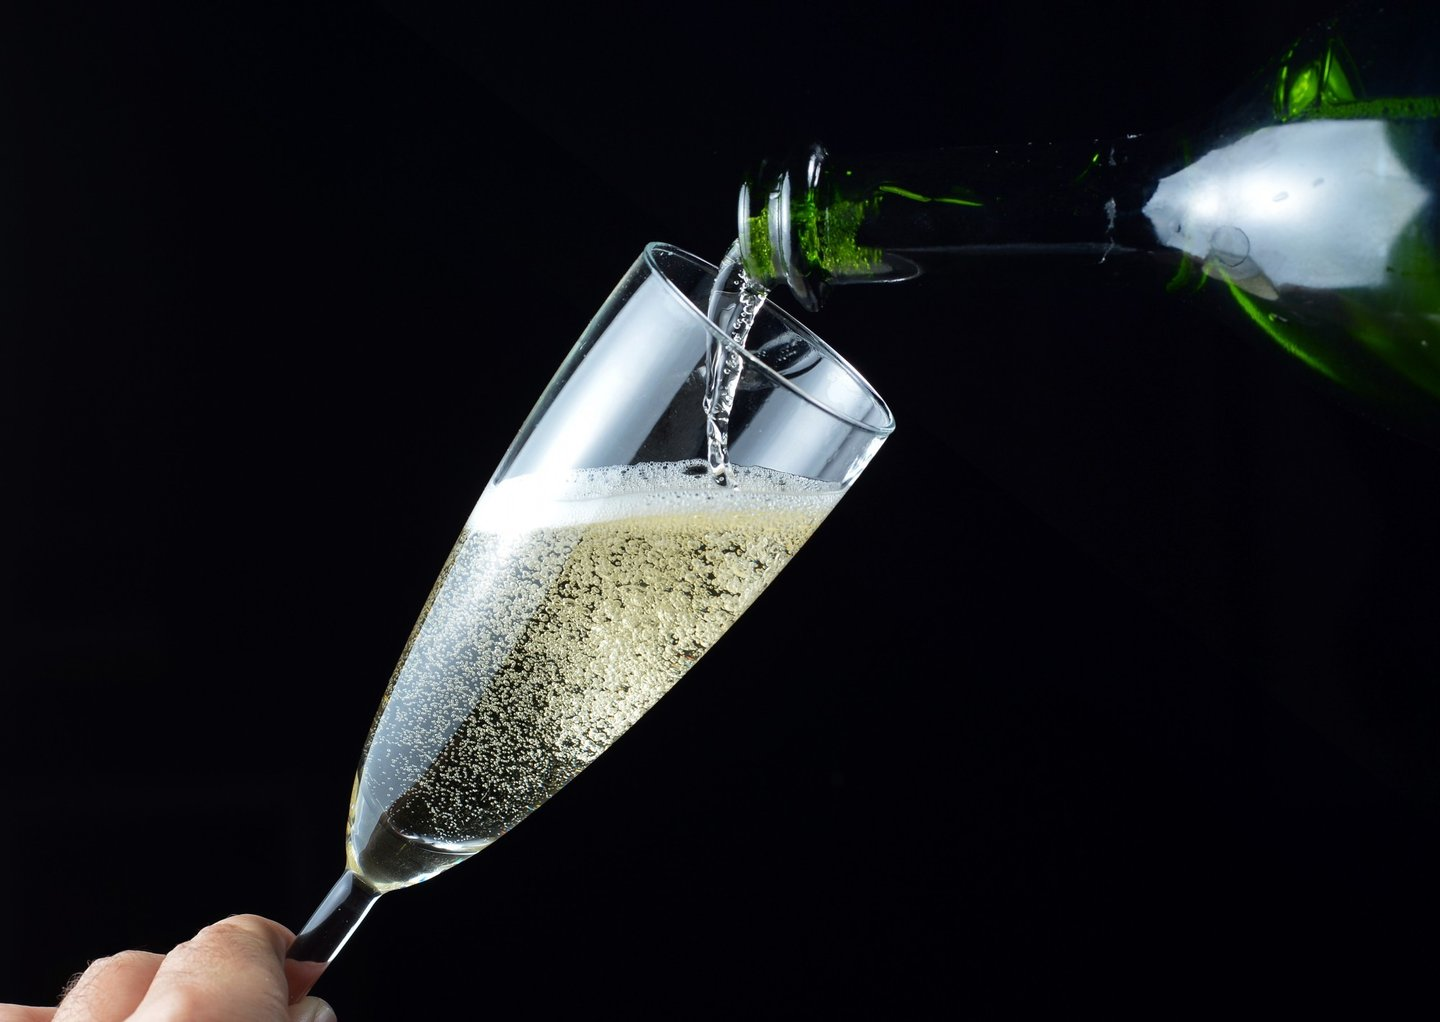 A picture taken on December 31, 2012 in Paris shows a glass being filled up with champagne ahead of the New Year celebrations. AFP PHOTO MIGUEL MEDINA        (Photo credit should read MIGUEL MEDINA/AFP/Getty Images)